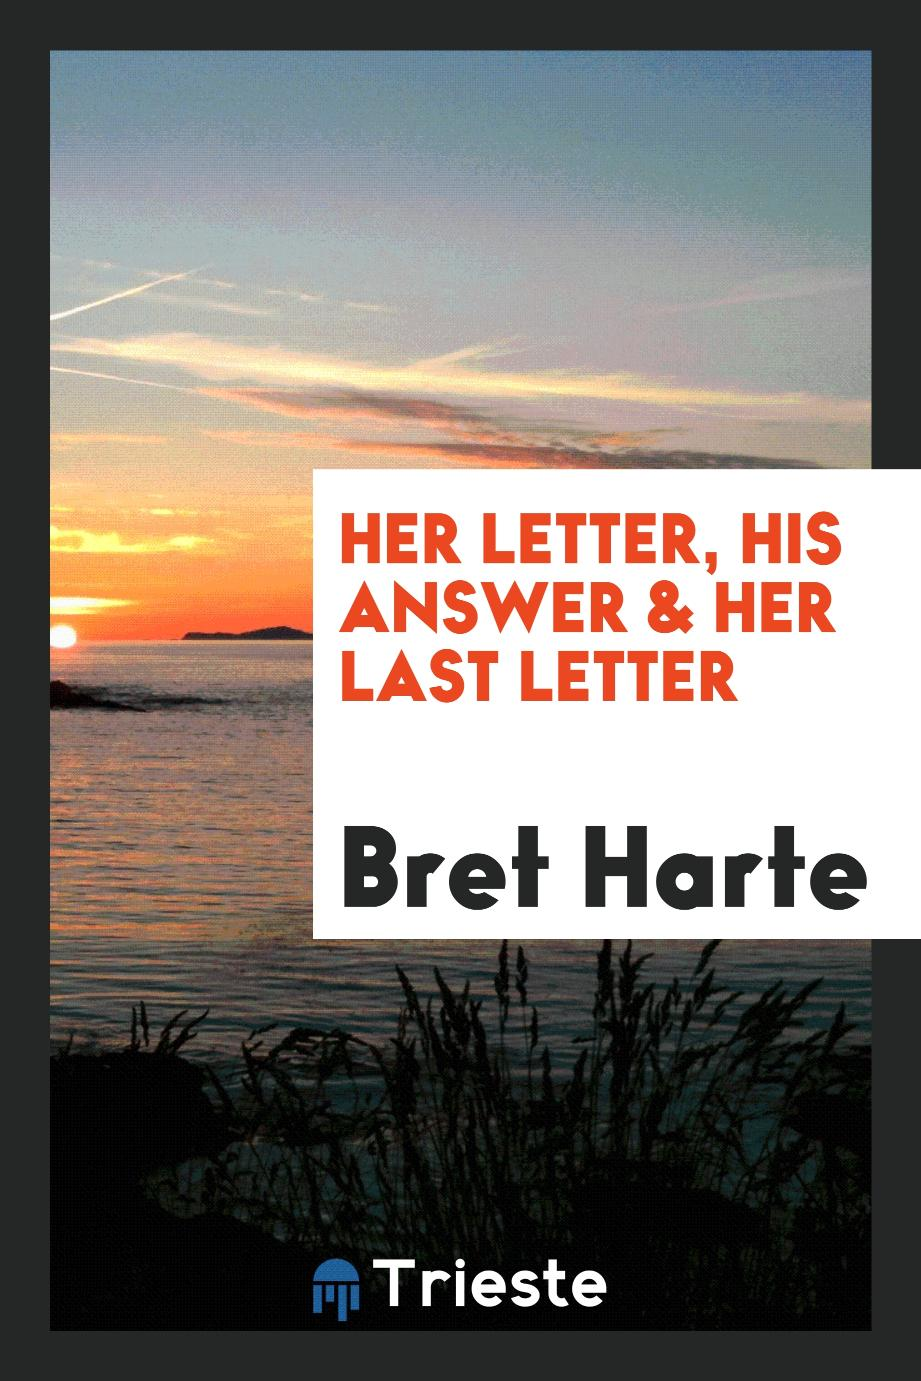 Her Letter, His Answer & Her Last Letter